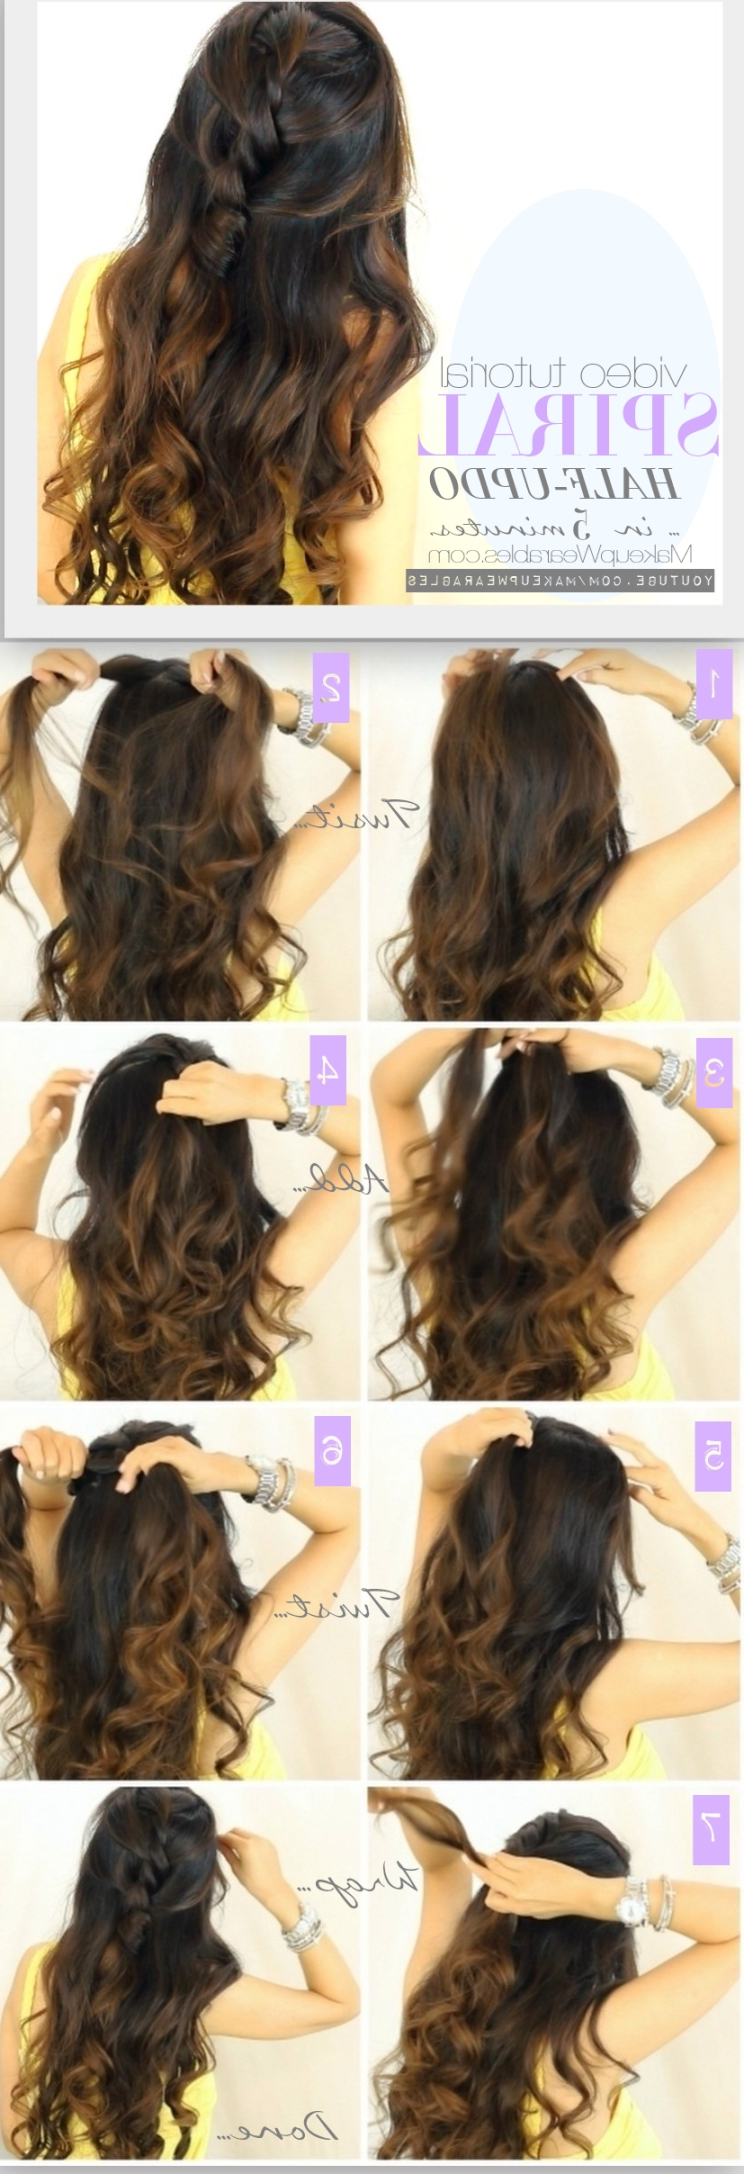 Daily Hairstyles For Long Hair Tutorial Regarding Fashionable Half Short Half Medium Hairstyles (View 16 of 20)